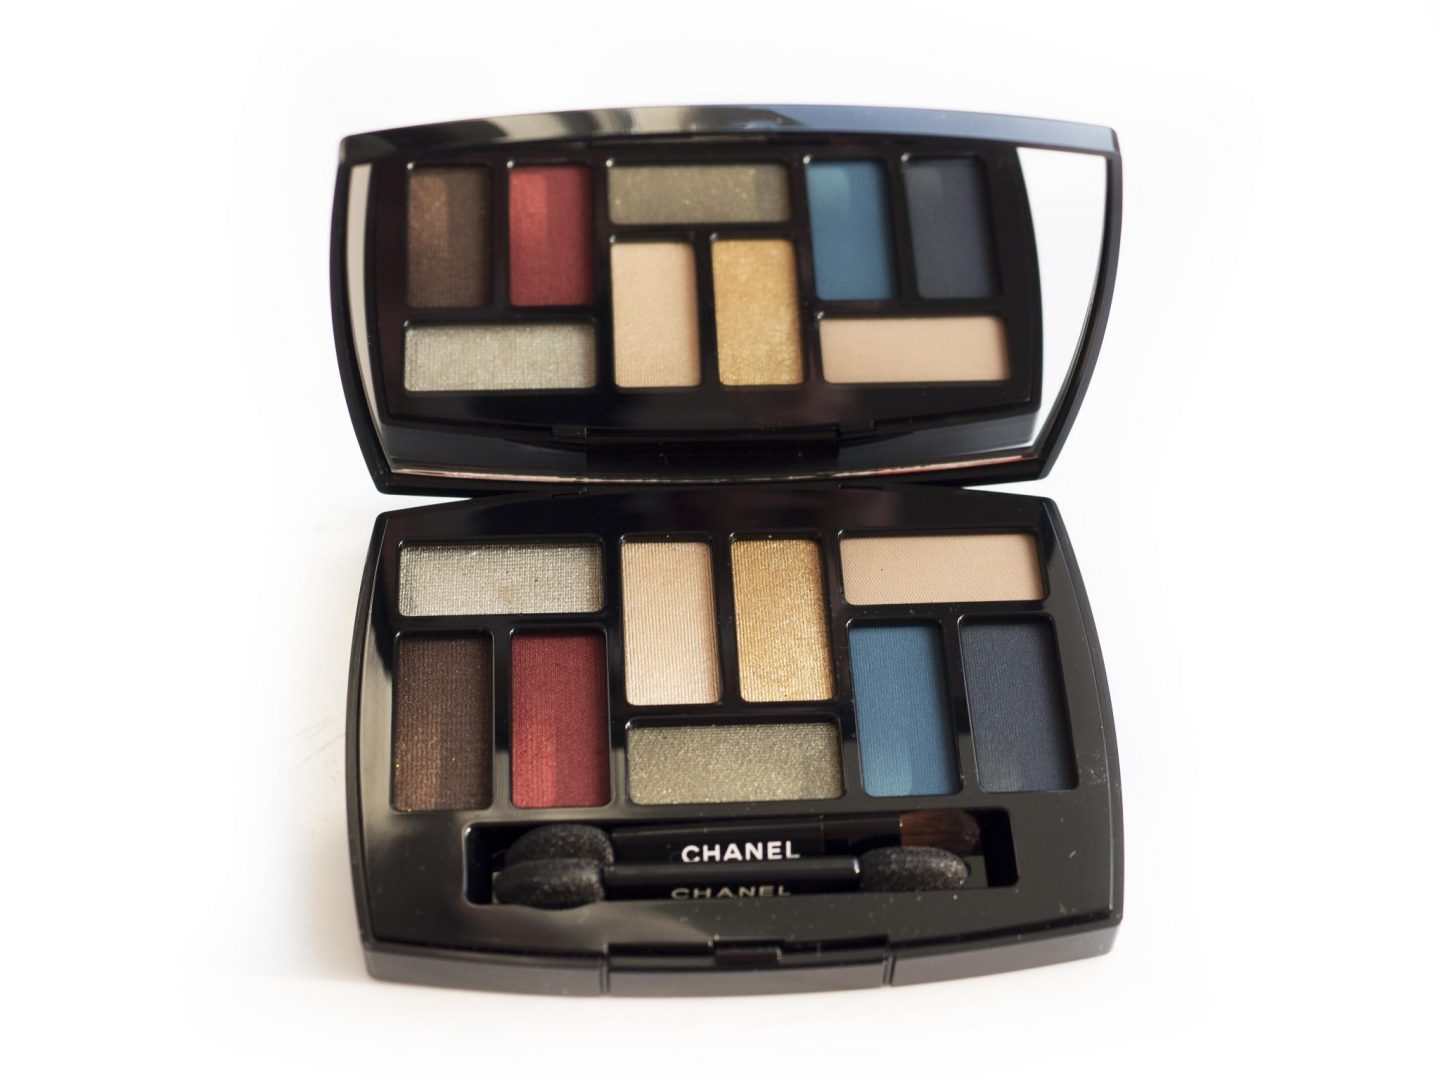 Chanel Les 9 Ombres Eyeshadow Palette No.2 QUINTESSENCE